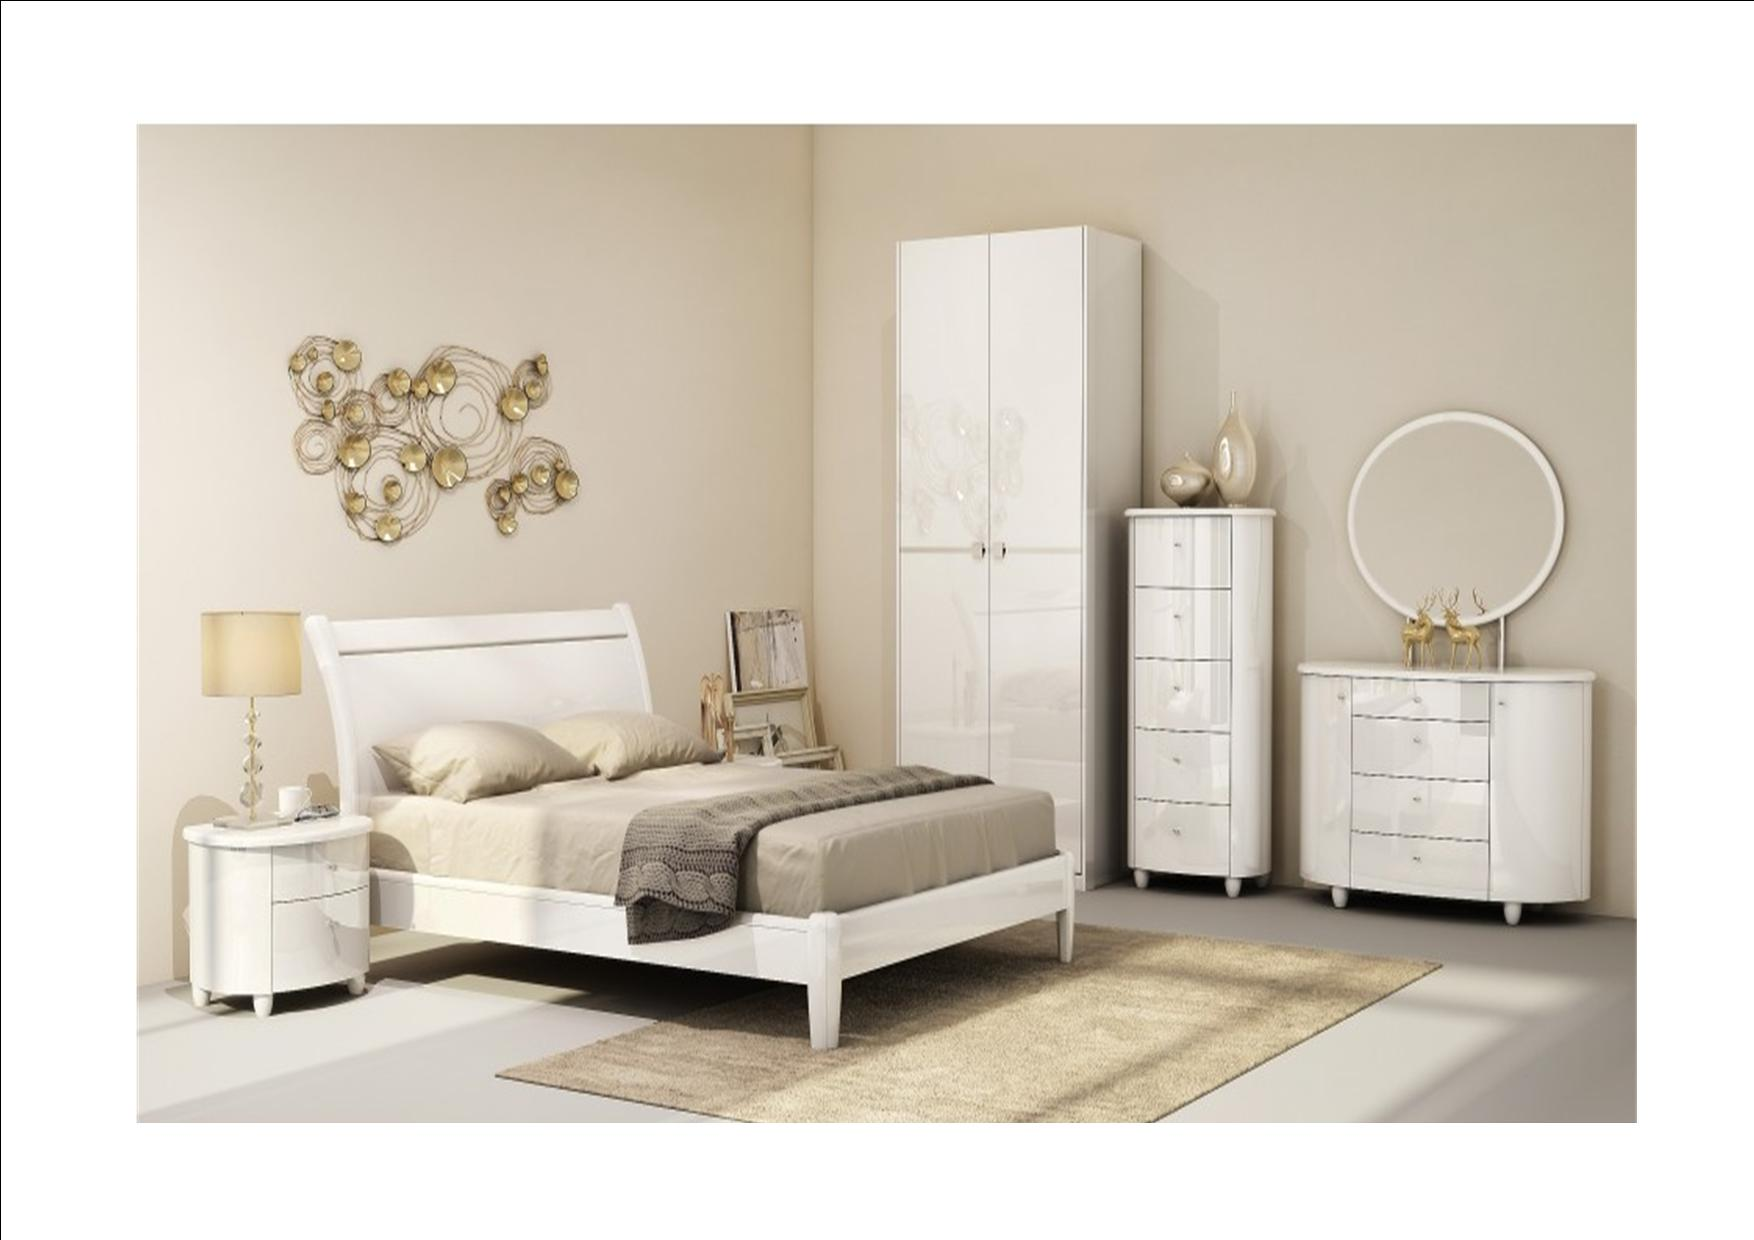 birlea aztec white gloss bedroom furniture wardrobe chest dressing